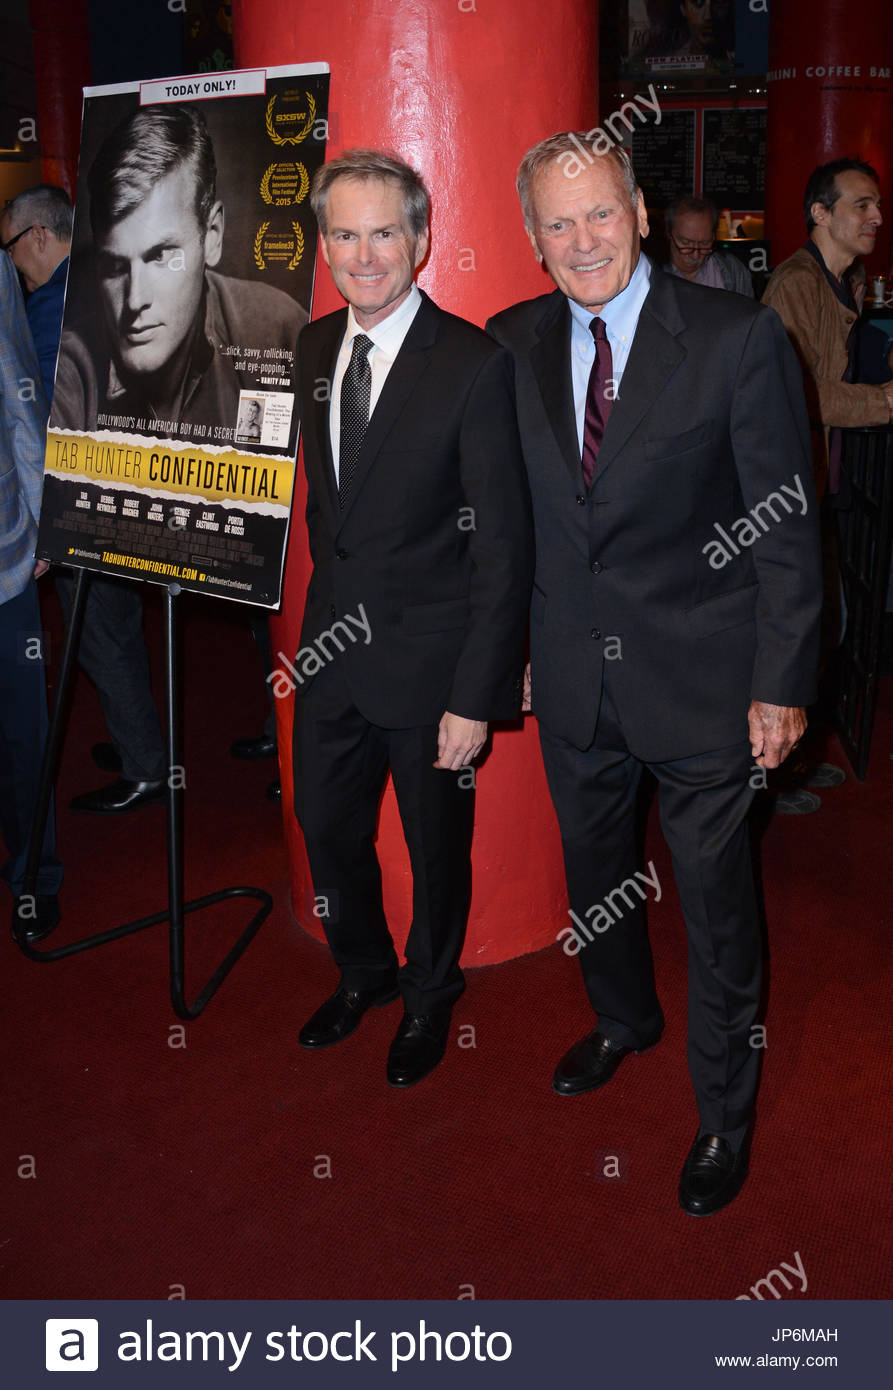 "Tab Hunter, partner and producer Allan Glaser. ""Tab Hunter ... Tab Hunter Partner"